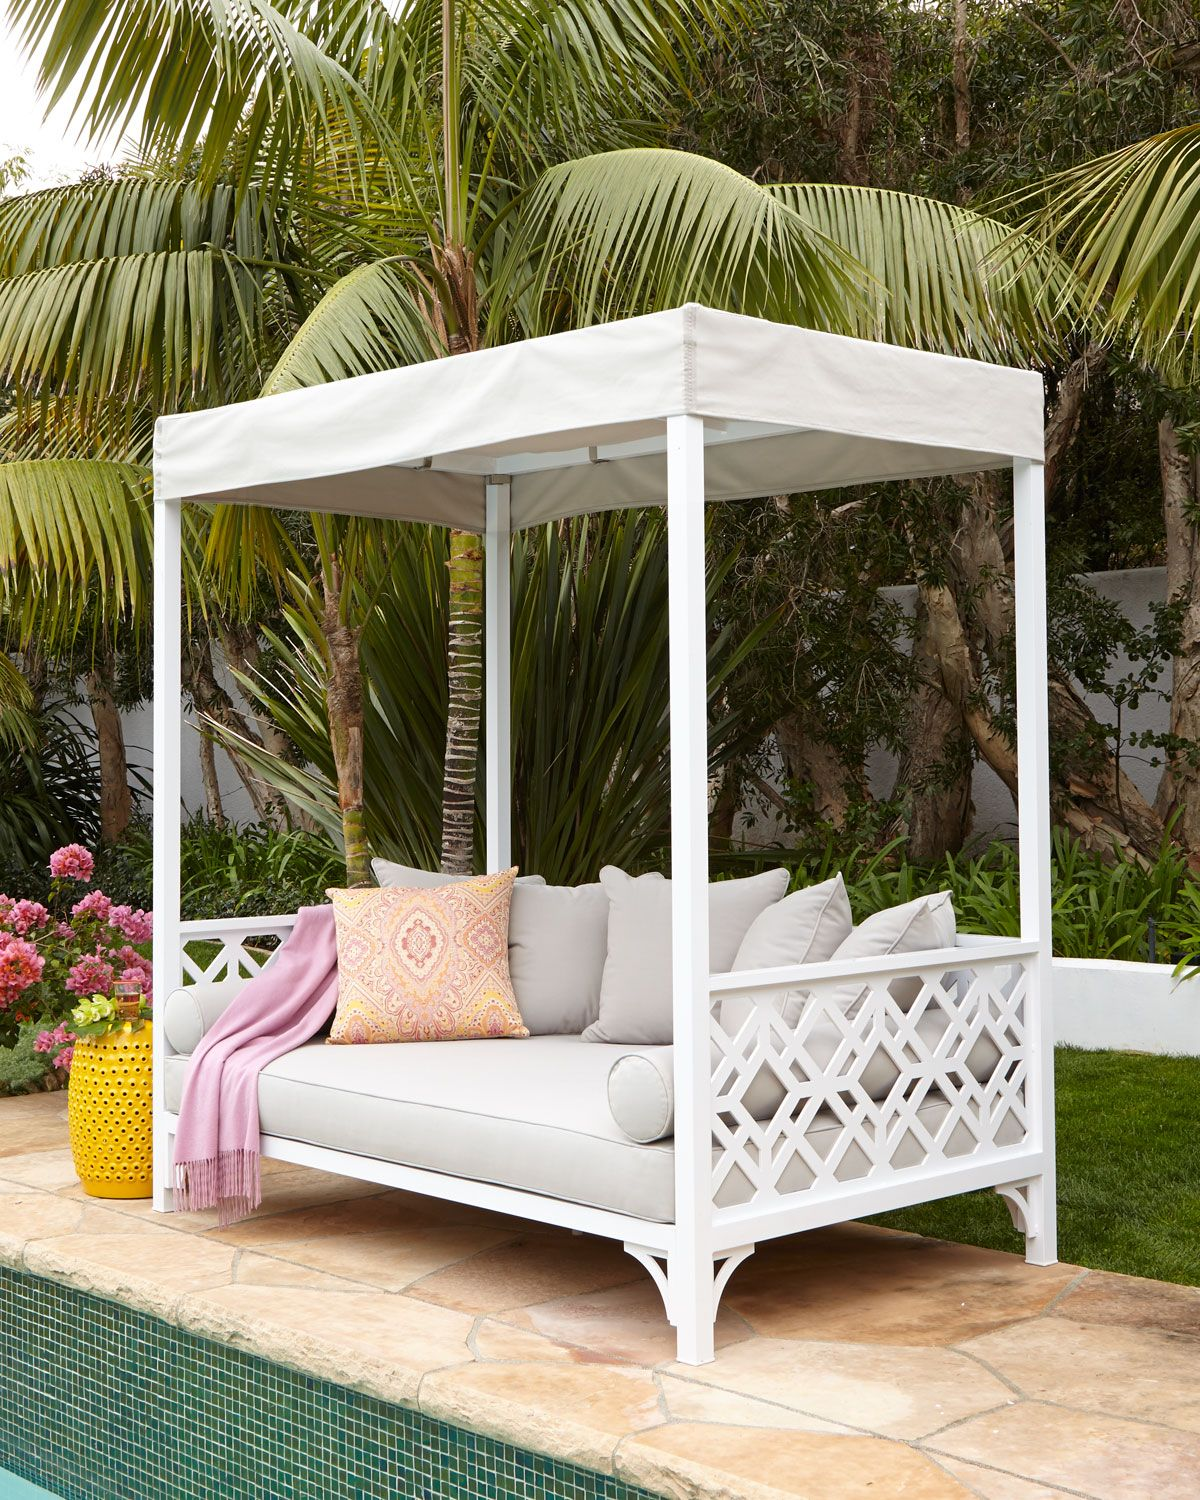 MADE IN THE SHADE A CANOPY COVERED OUTDOOR DAYBED FOR LOUNGING